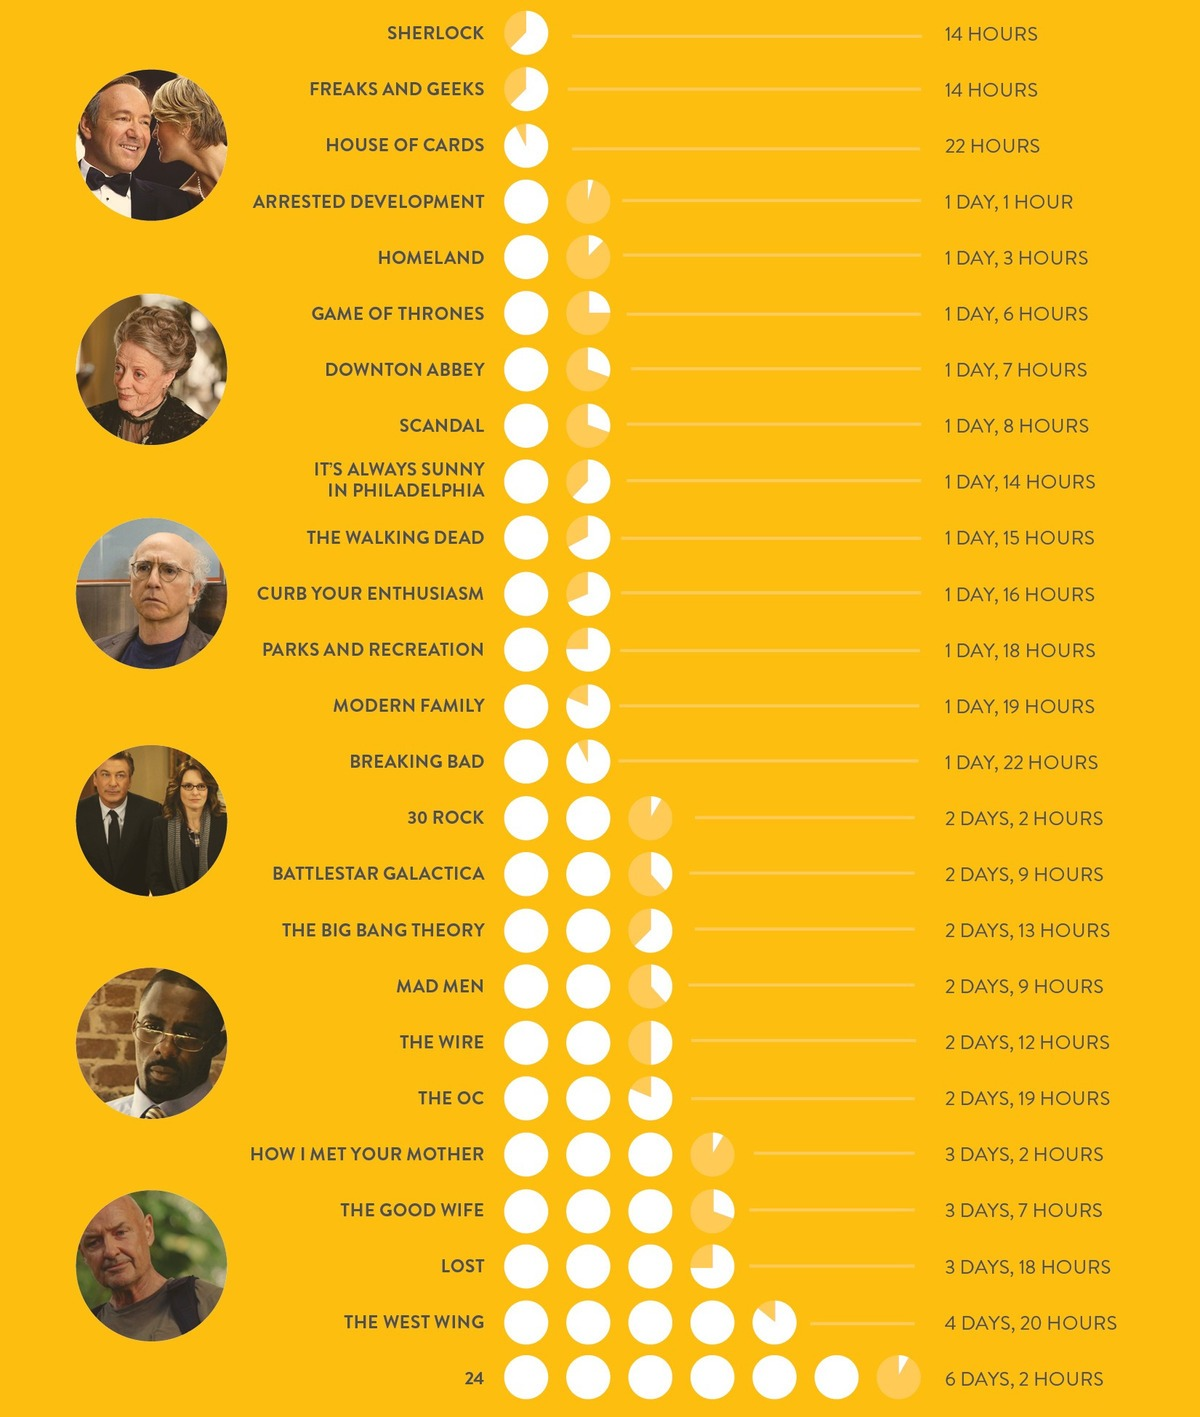 TV Series Total Length Infographic